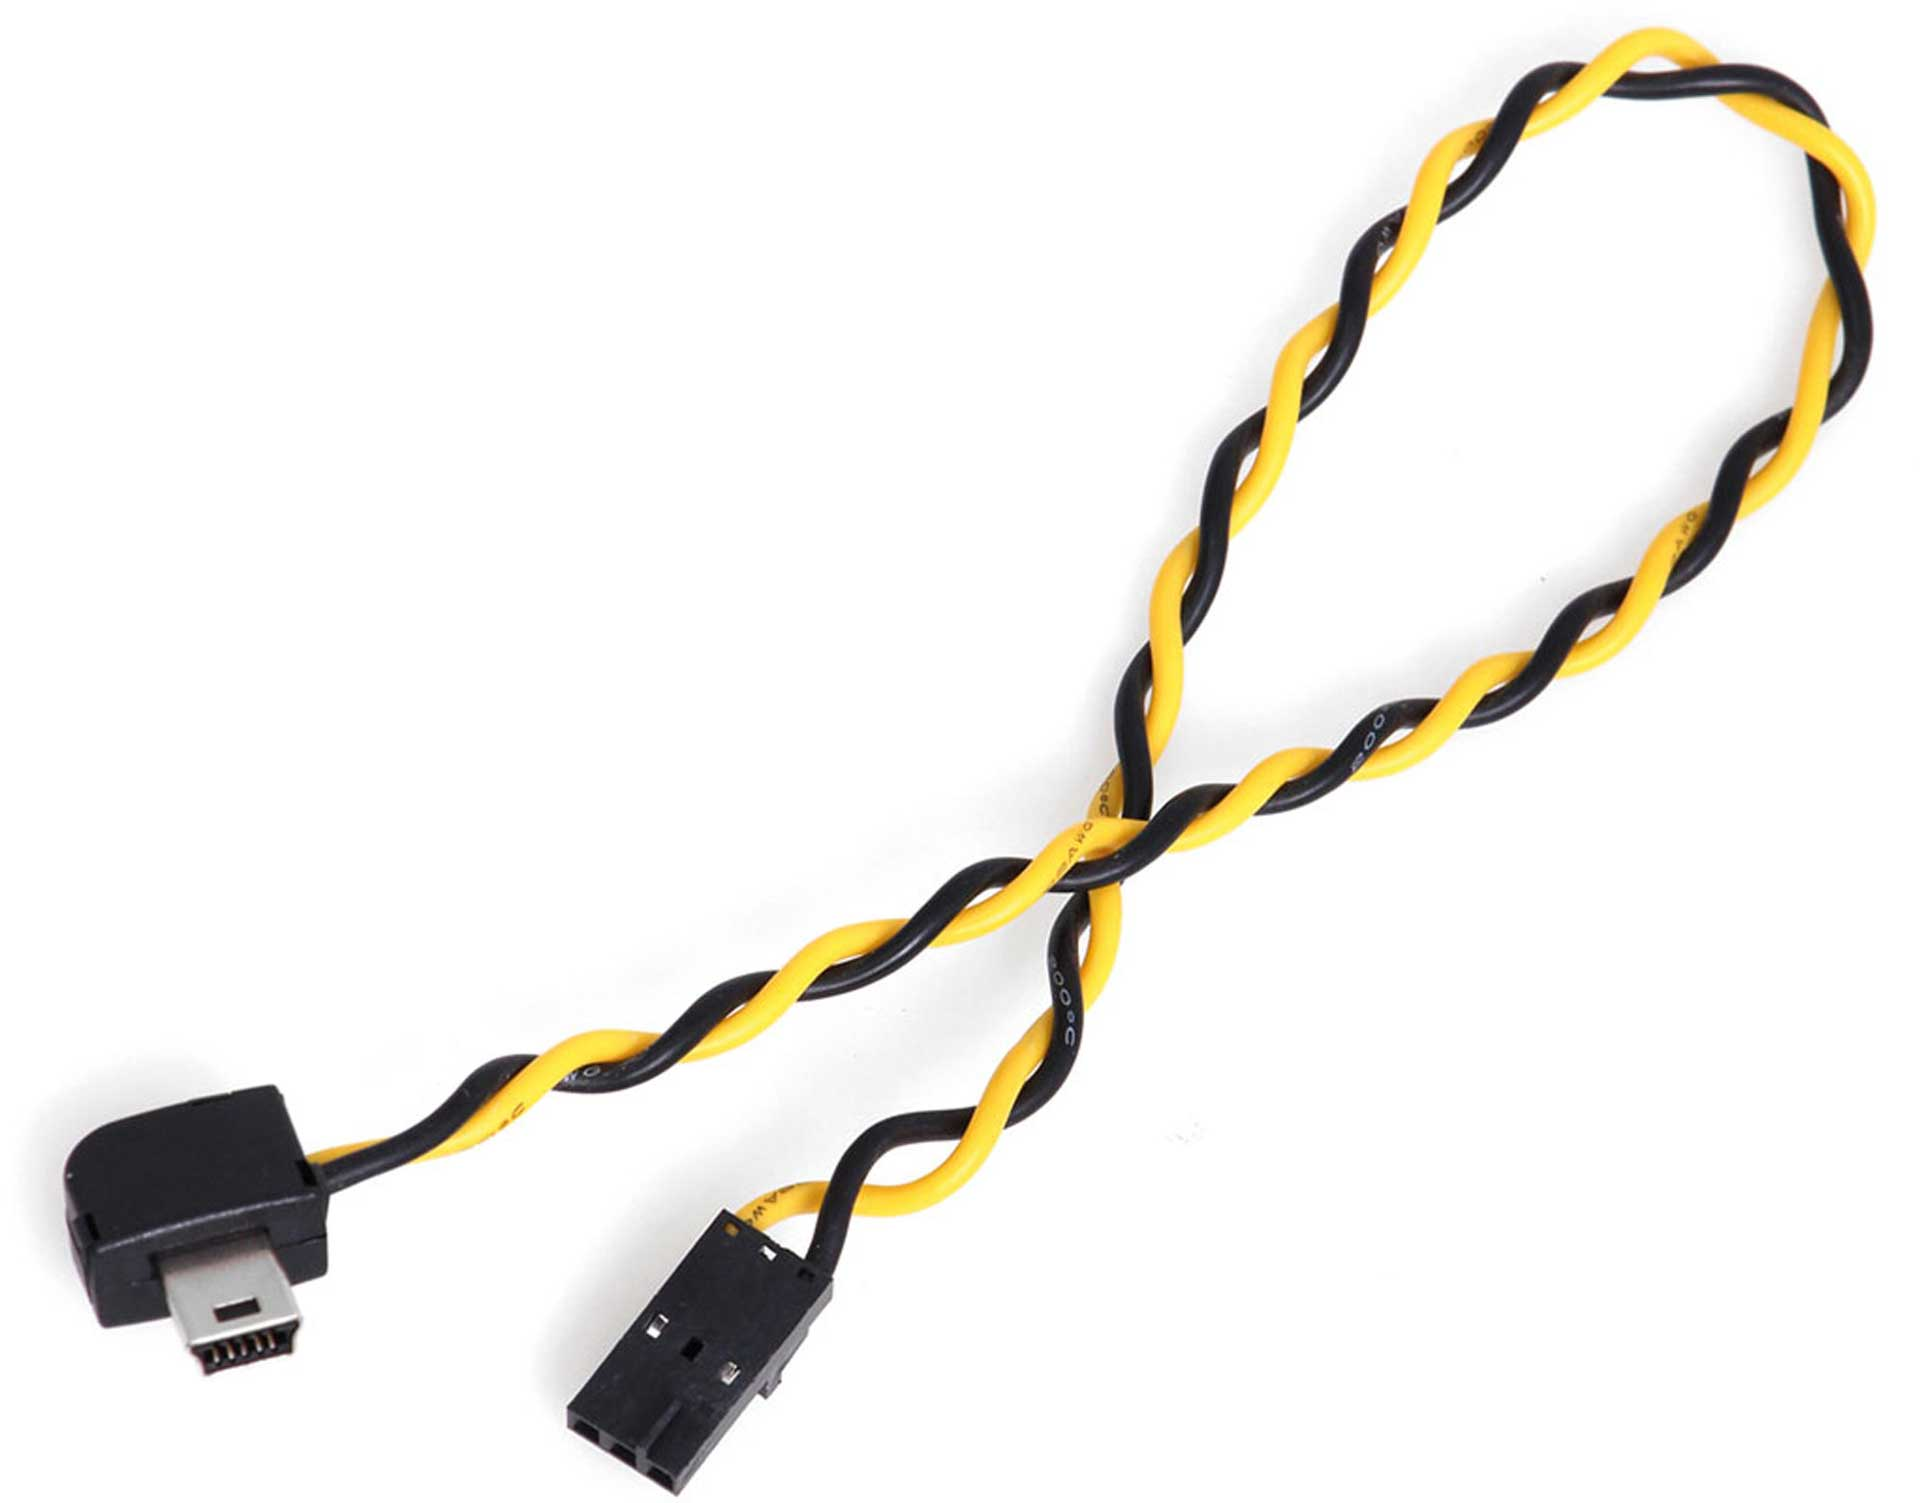 MODELLBAU LINDINGER MINI USB LIVE OUT CABLE GOPRO